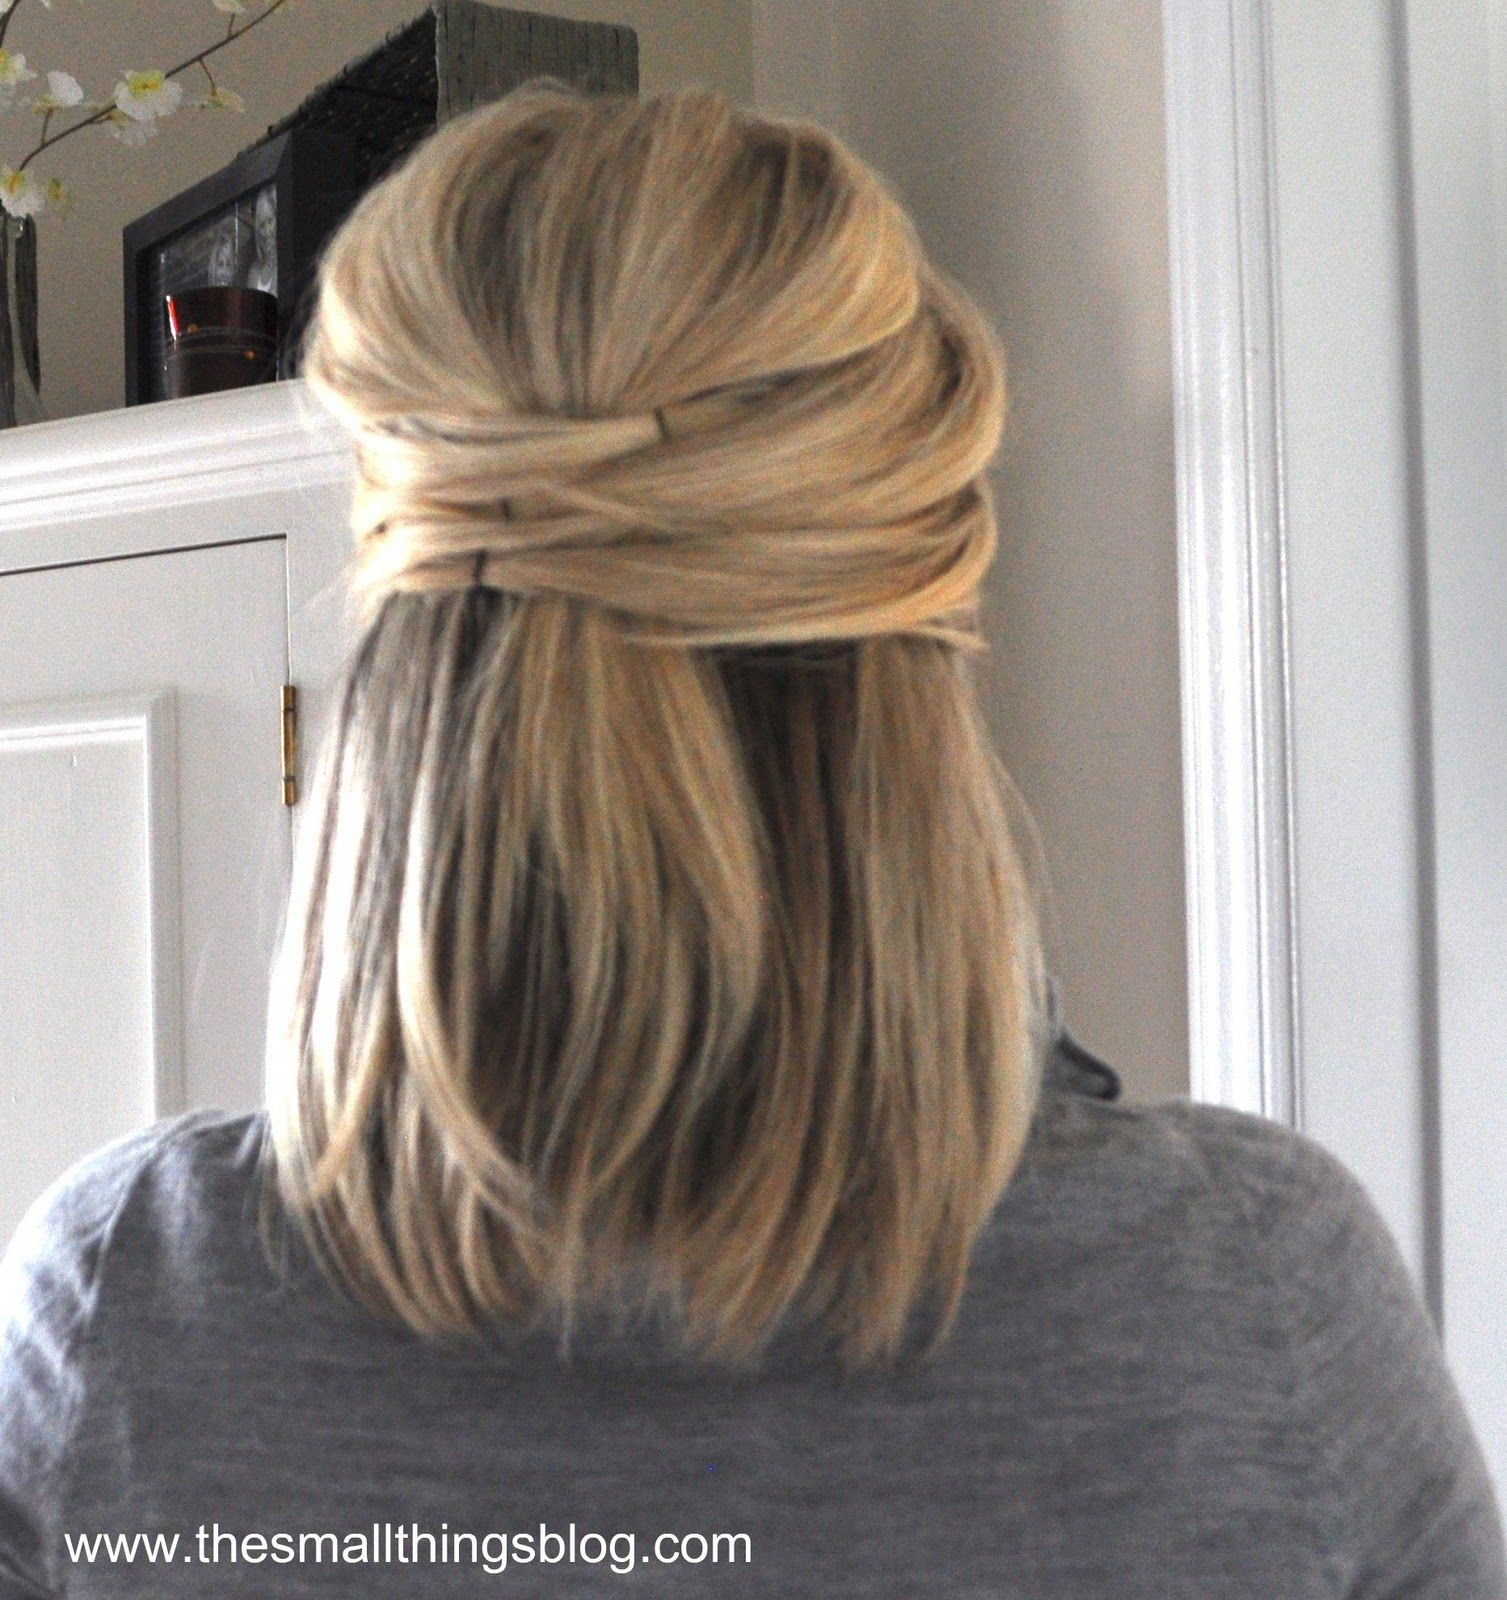 Musttry best bob haircuts for all times hair pinterest hair